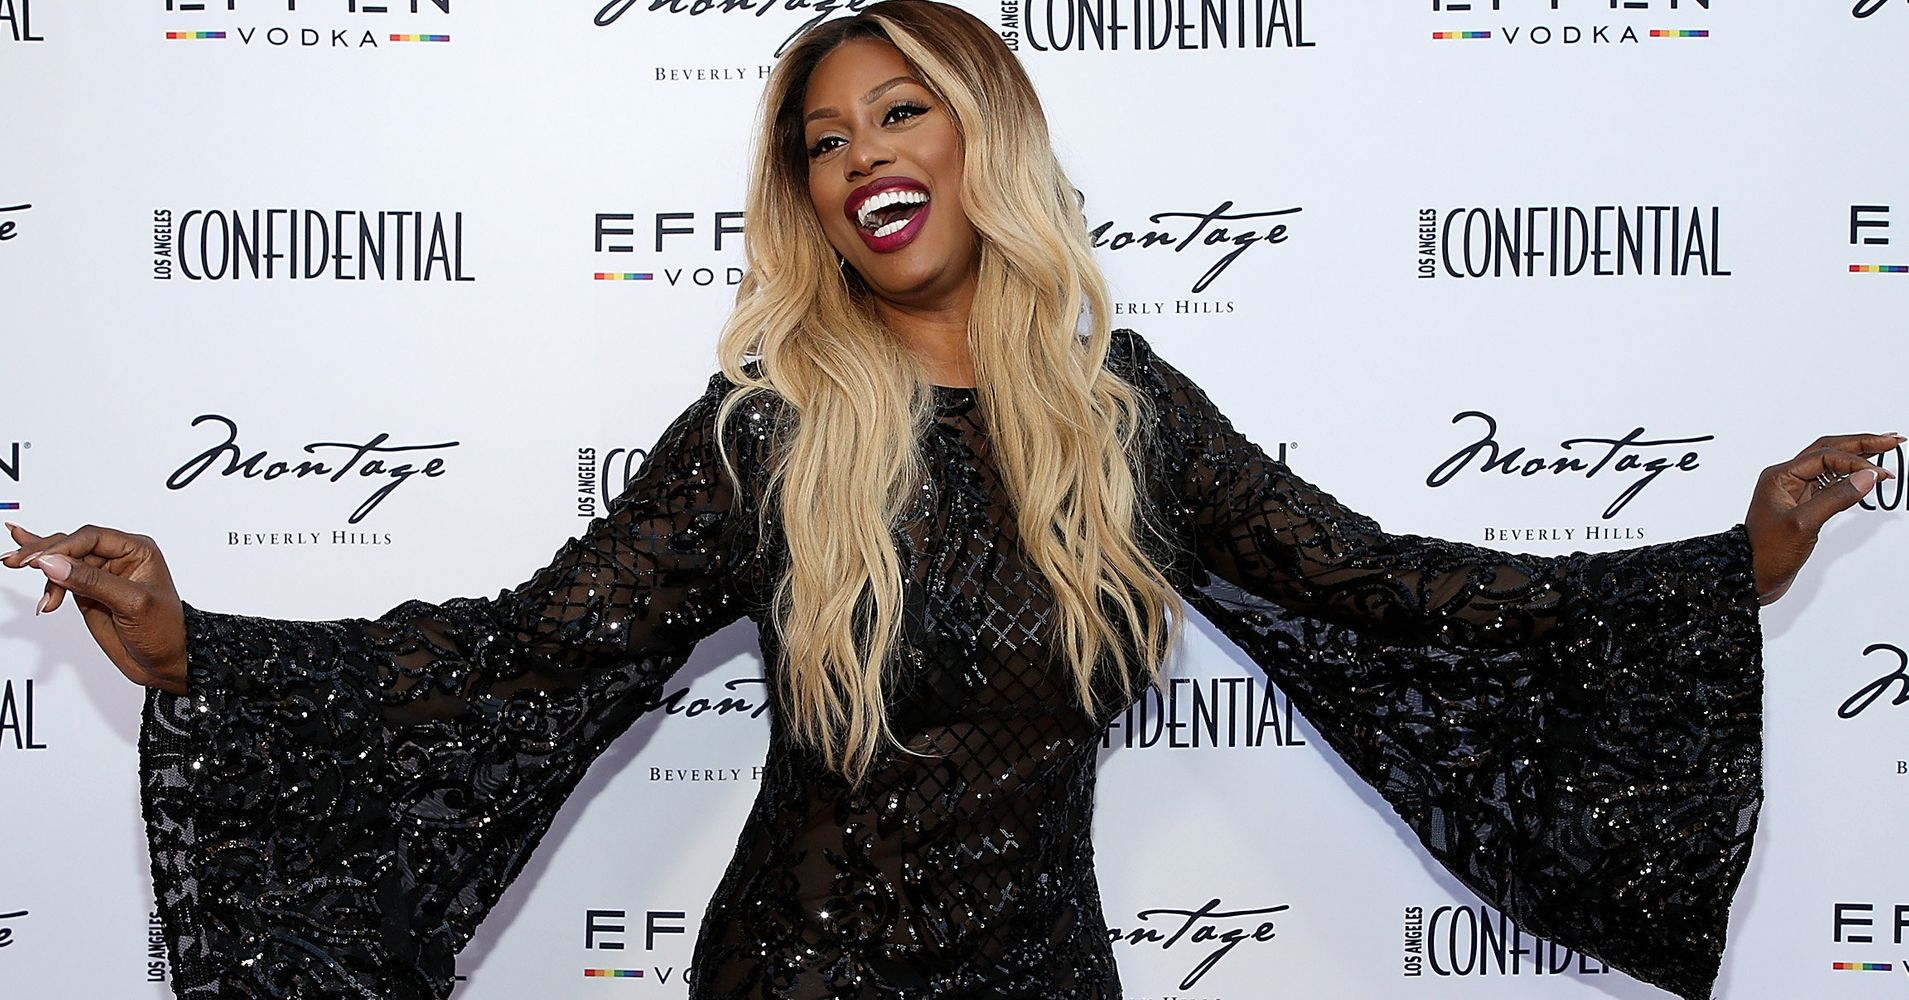 45 Glorious Photos Of Laverne Cox's Style, Past And Present